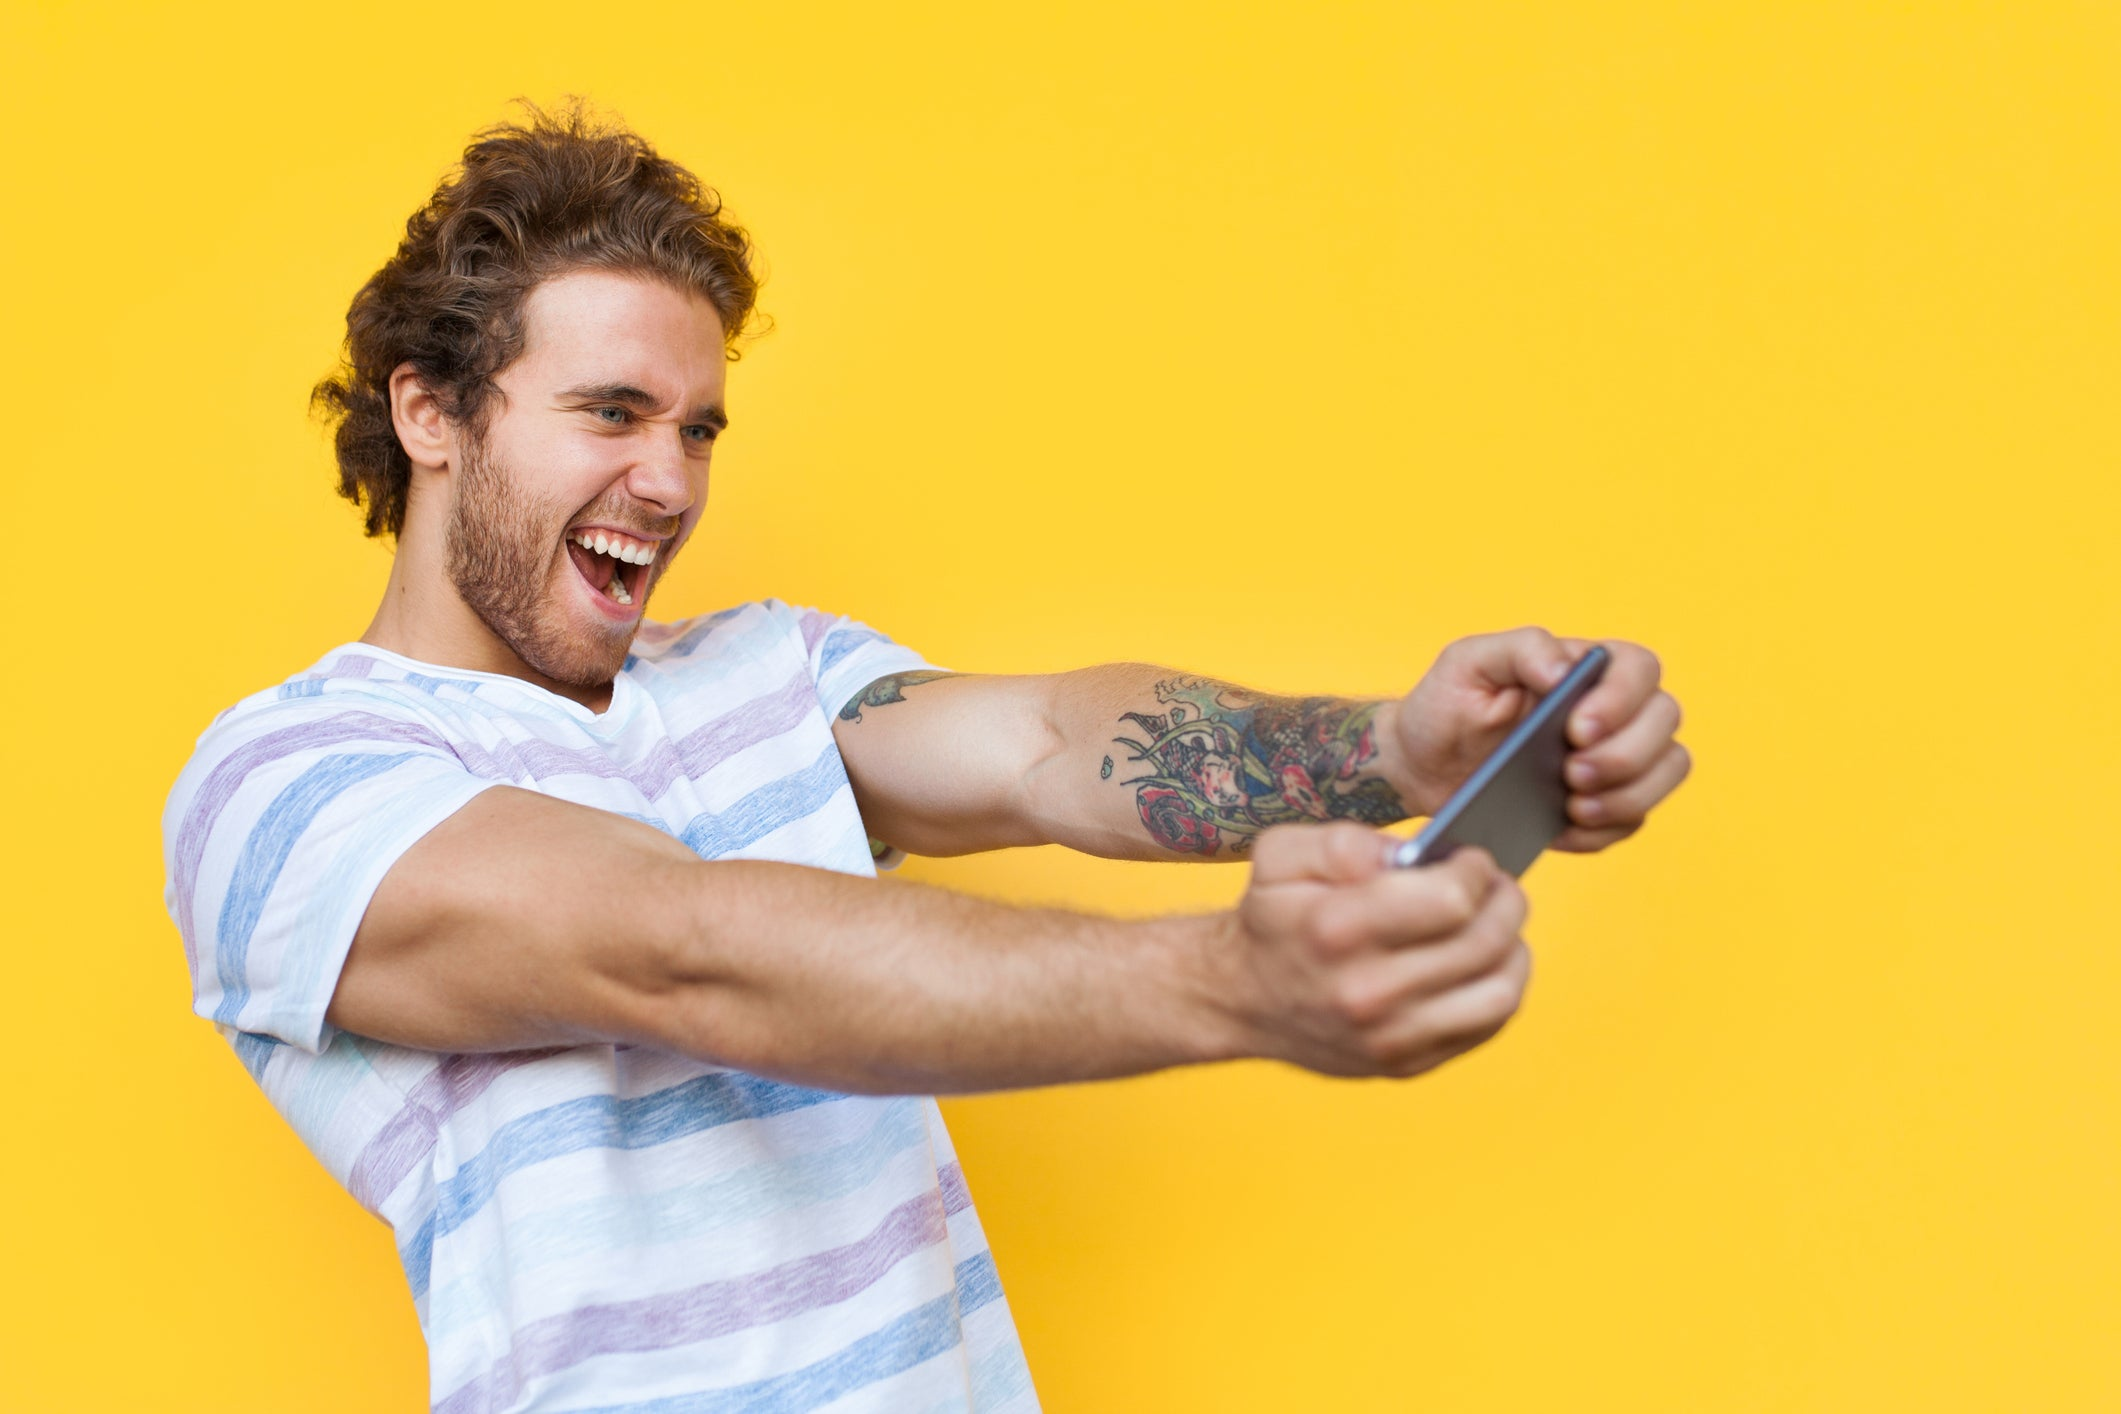 A man plays a smartphone game.